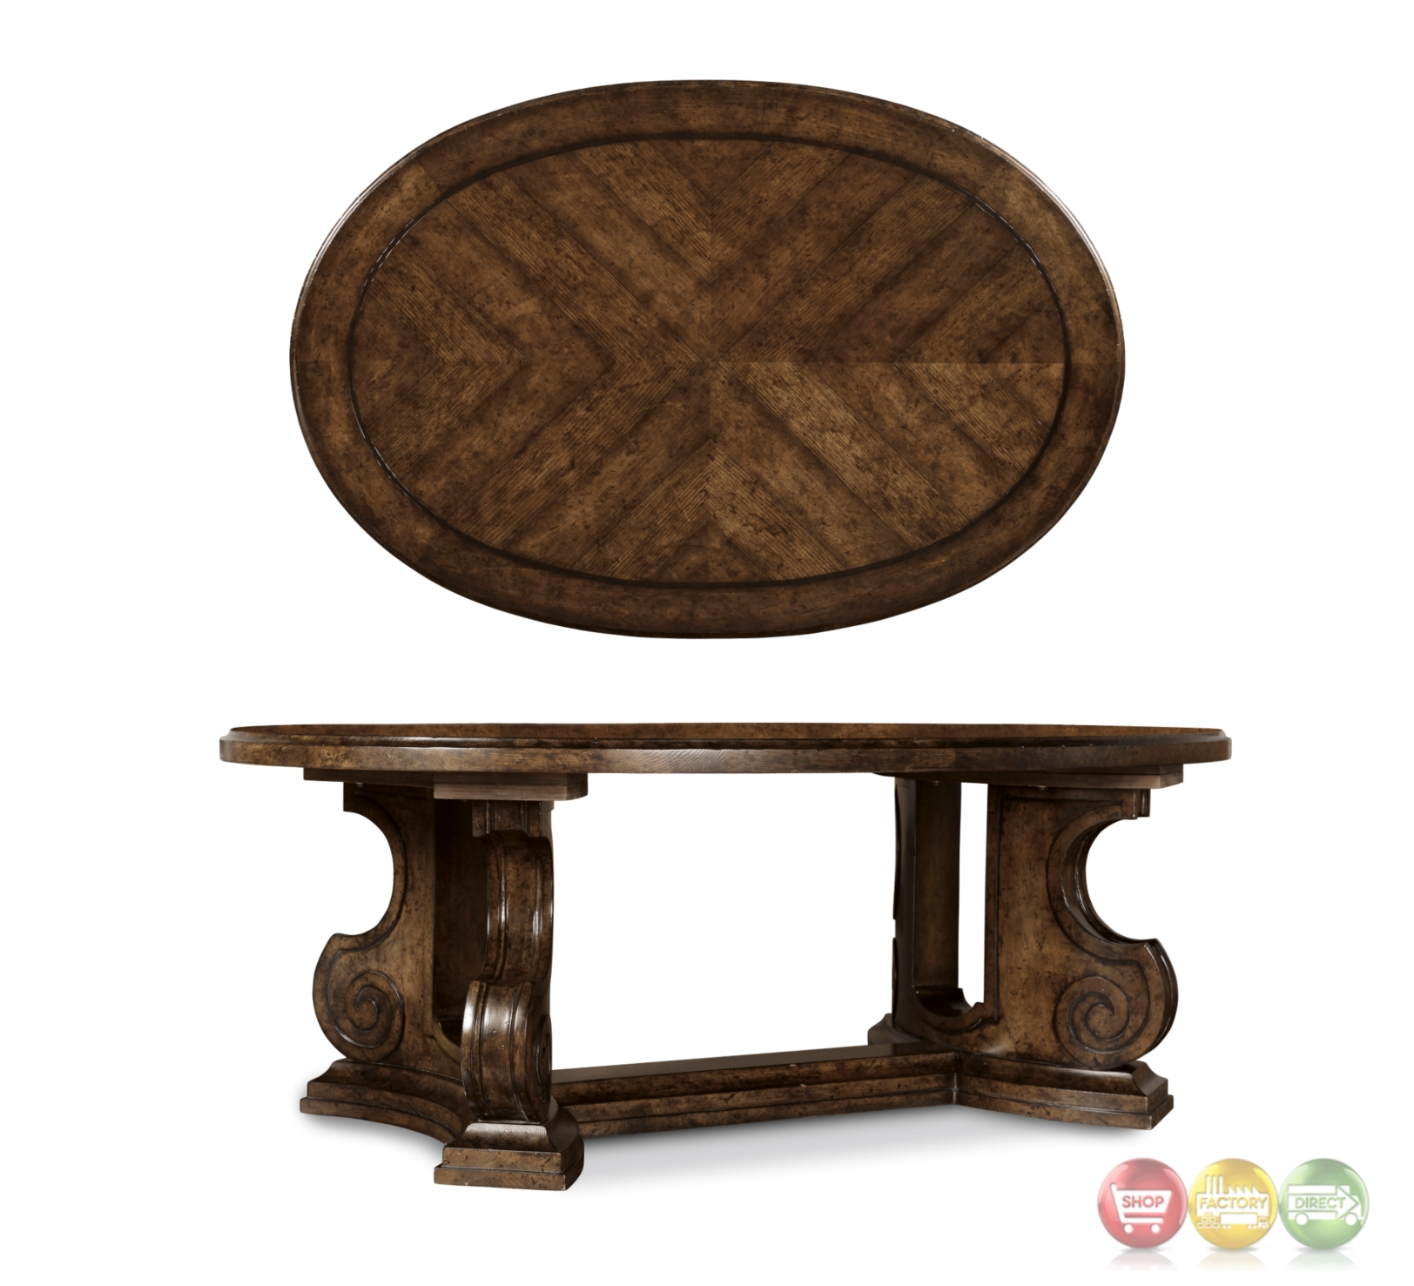 Firenze Ii Tuscan Oval Cocktail Table In Alder And Knotty Oak